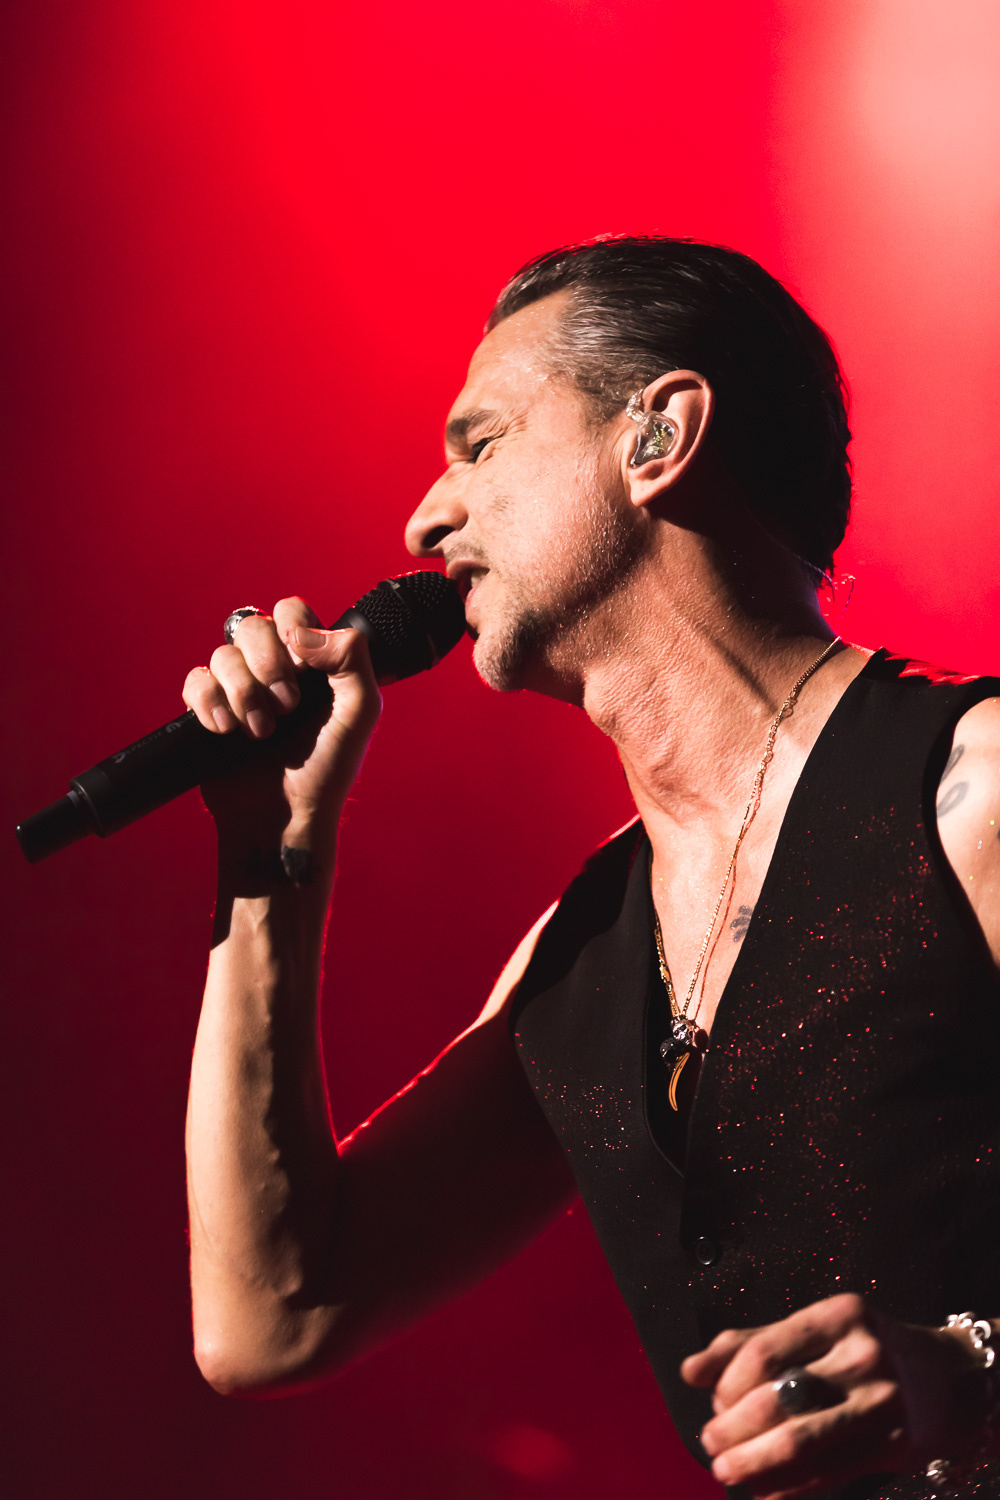 Dave Gahan singing onstage with Depeche Mode. Photo: Lmsorenson.net